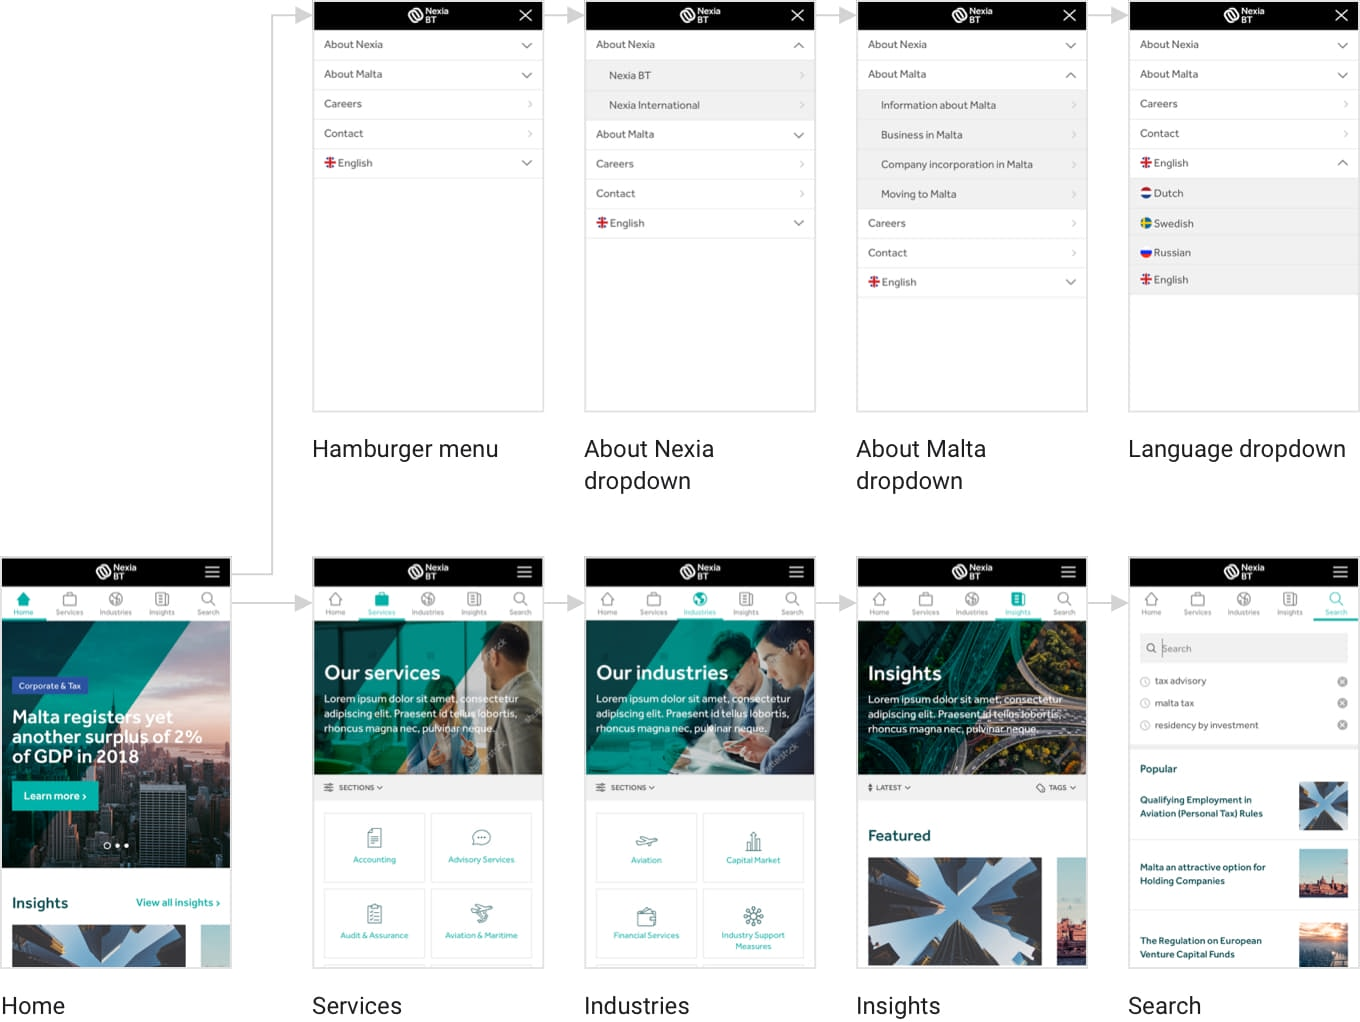 User flow constructed with the final designs showing the mobile screen flow of the mobile menu